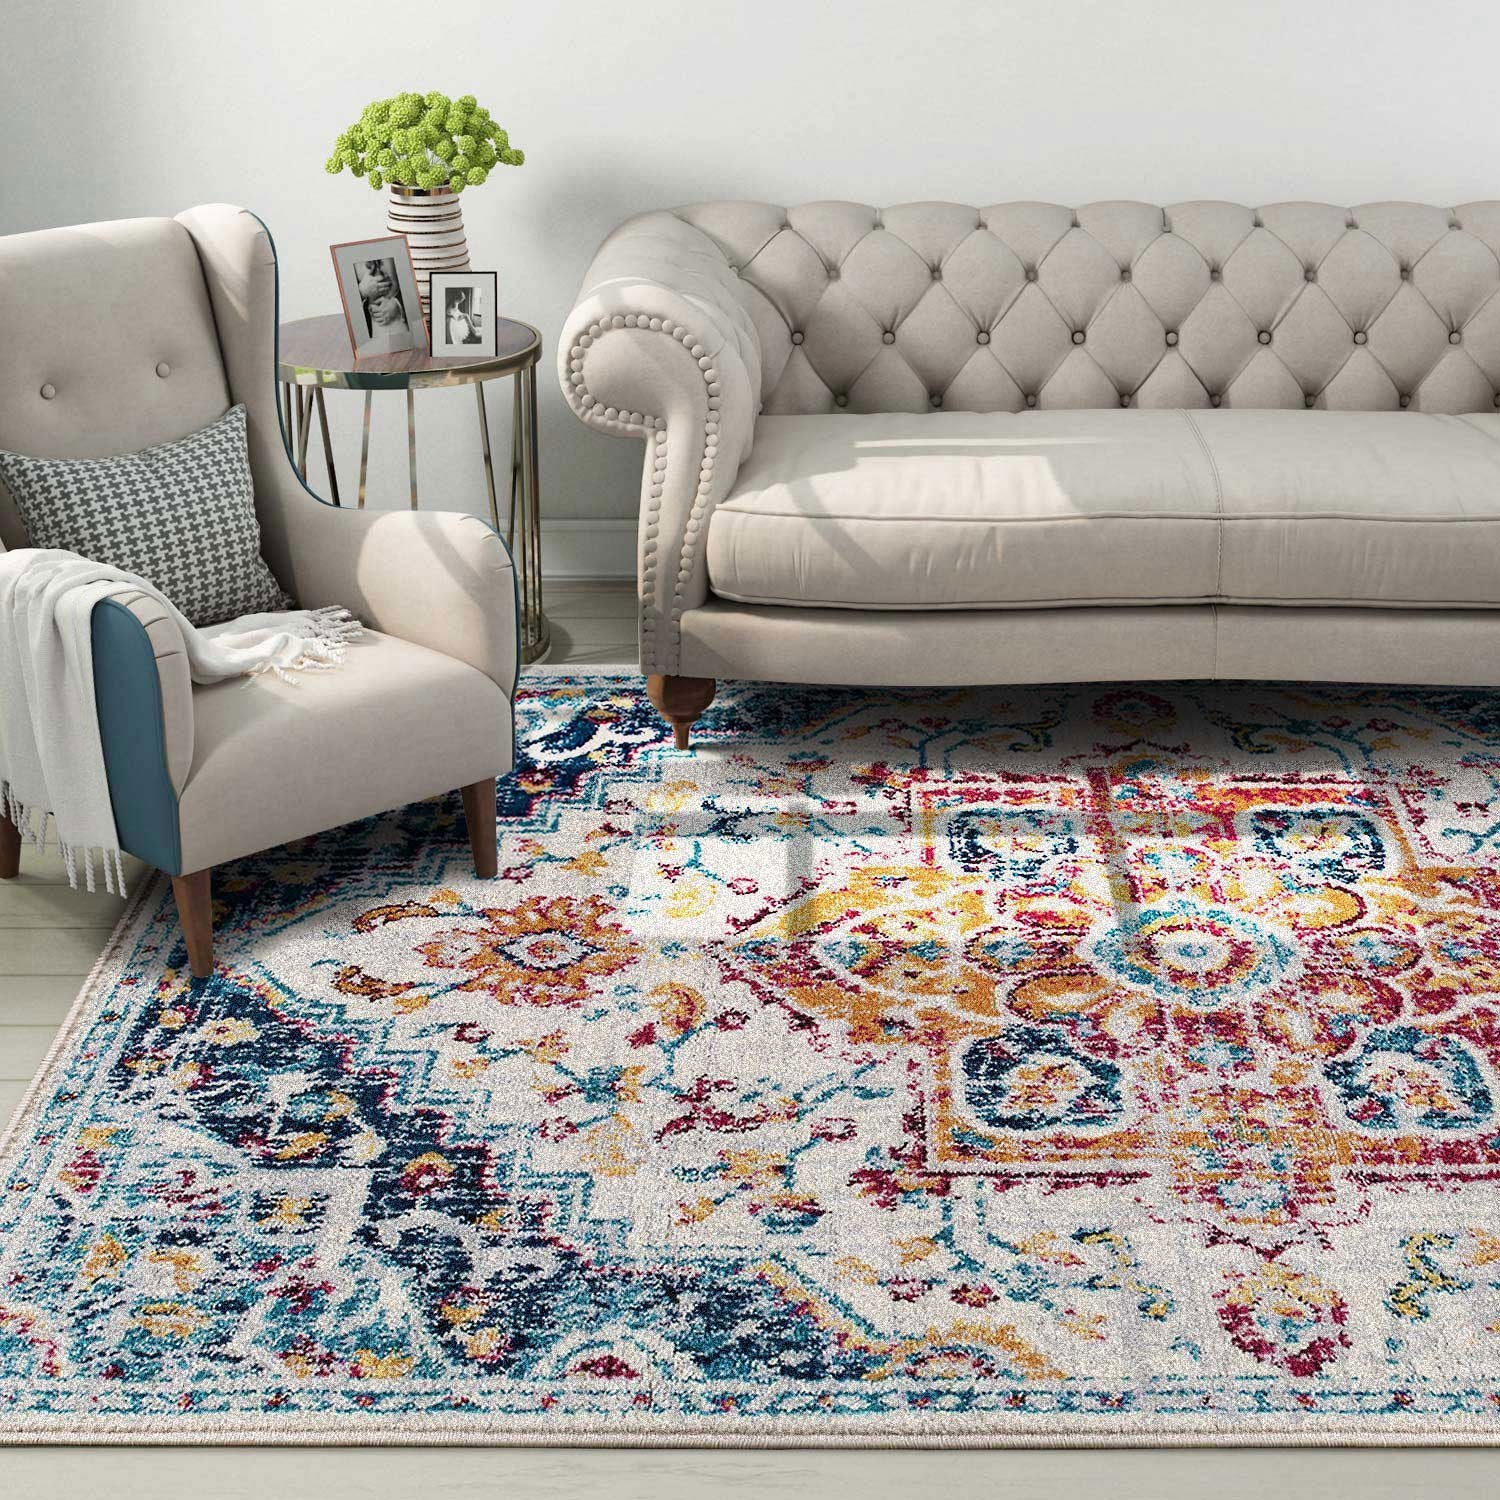 Floral Printed Jewel Tone Area Rug Pic